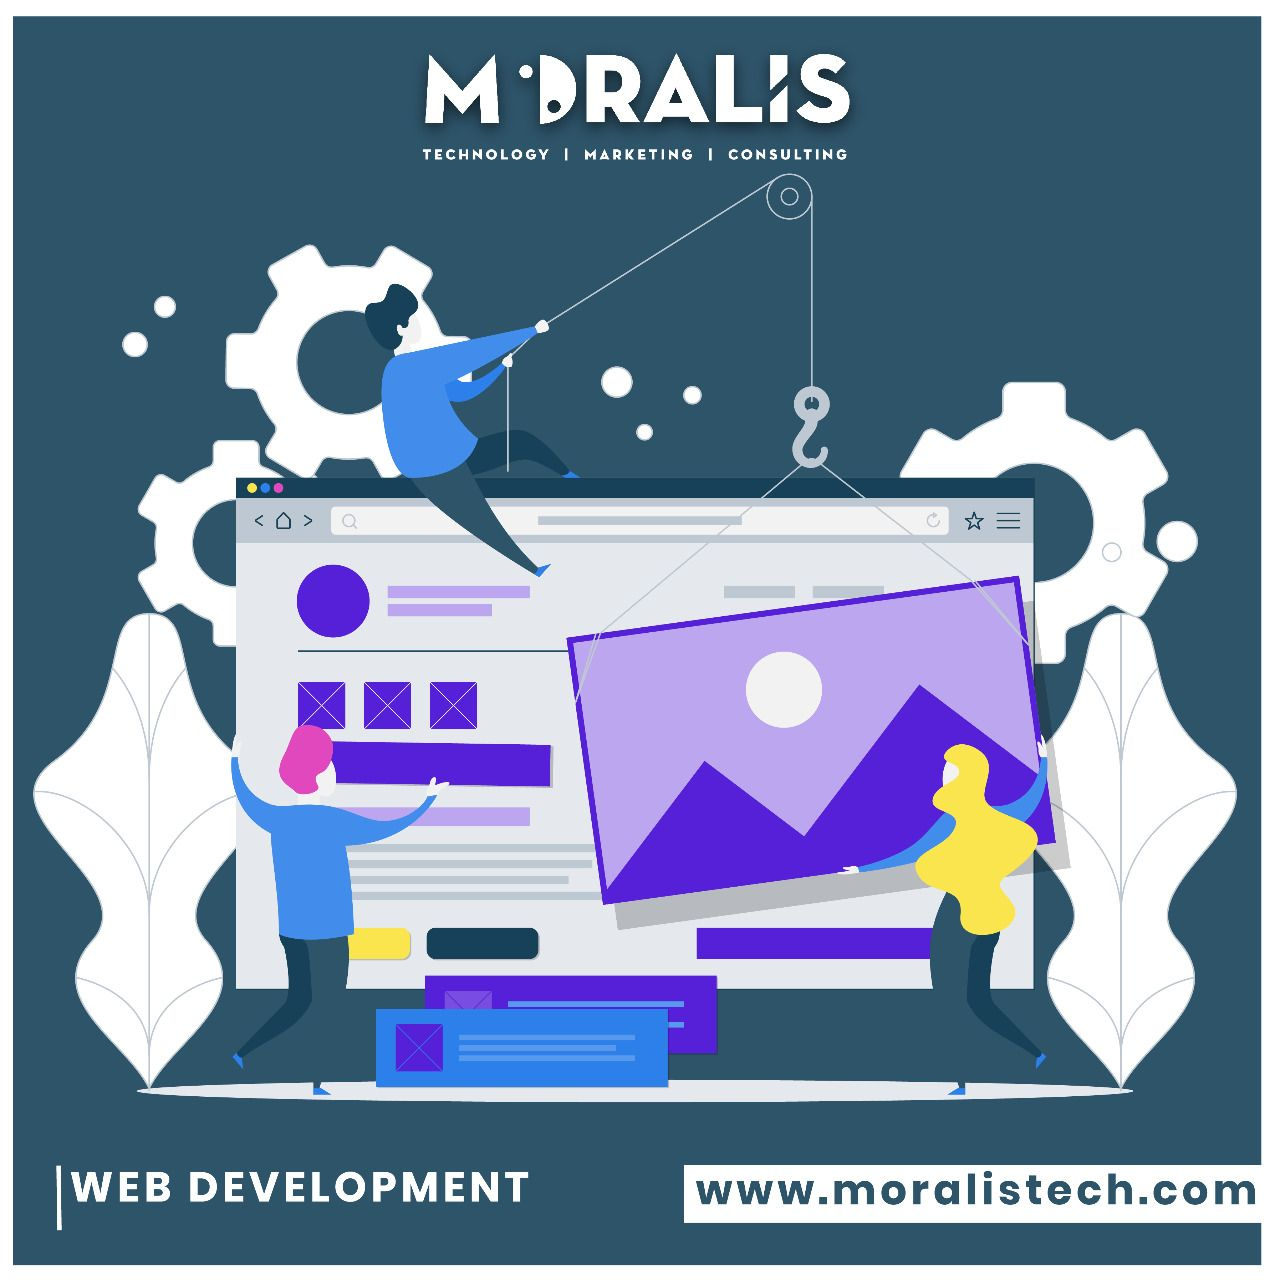 We create responsible and eye-catchy Web Designs and Developments that keep your audience engaged . . . #moralis #moralistech #digitalmarketing #marketing #branding #design #webdesigns #developments #webdesign #brand #logo #websitedesigning #brandbuilding #buildingindustry #corporatebranding #brandvalues #logodesign #graphicdesign #brandexperience  #brandactivation #creativeagency #brandagency #brandstrategy #digitalagency #advertising #brandpositioning #brandexperiences #marketingagency